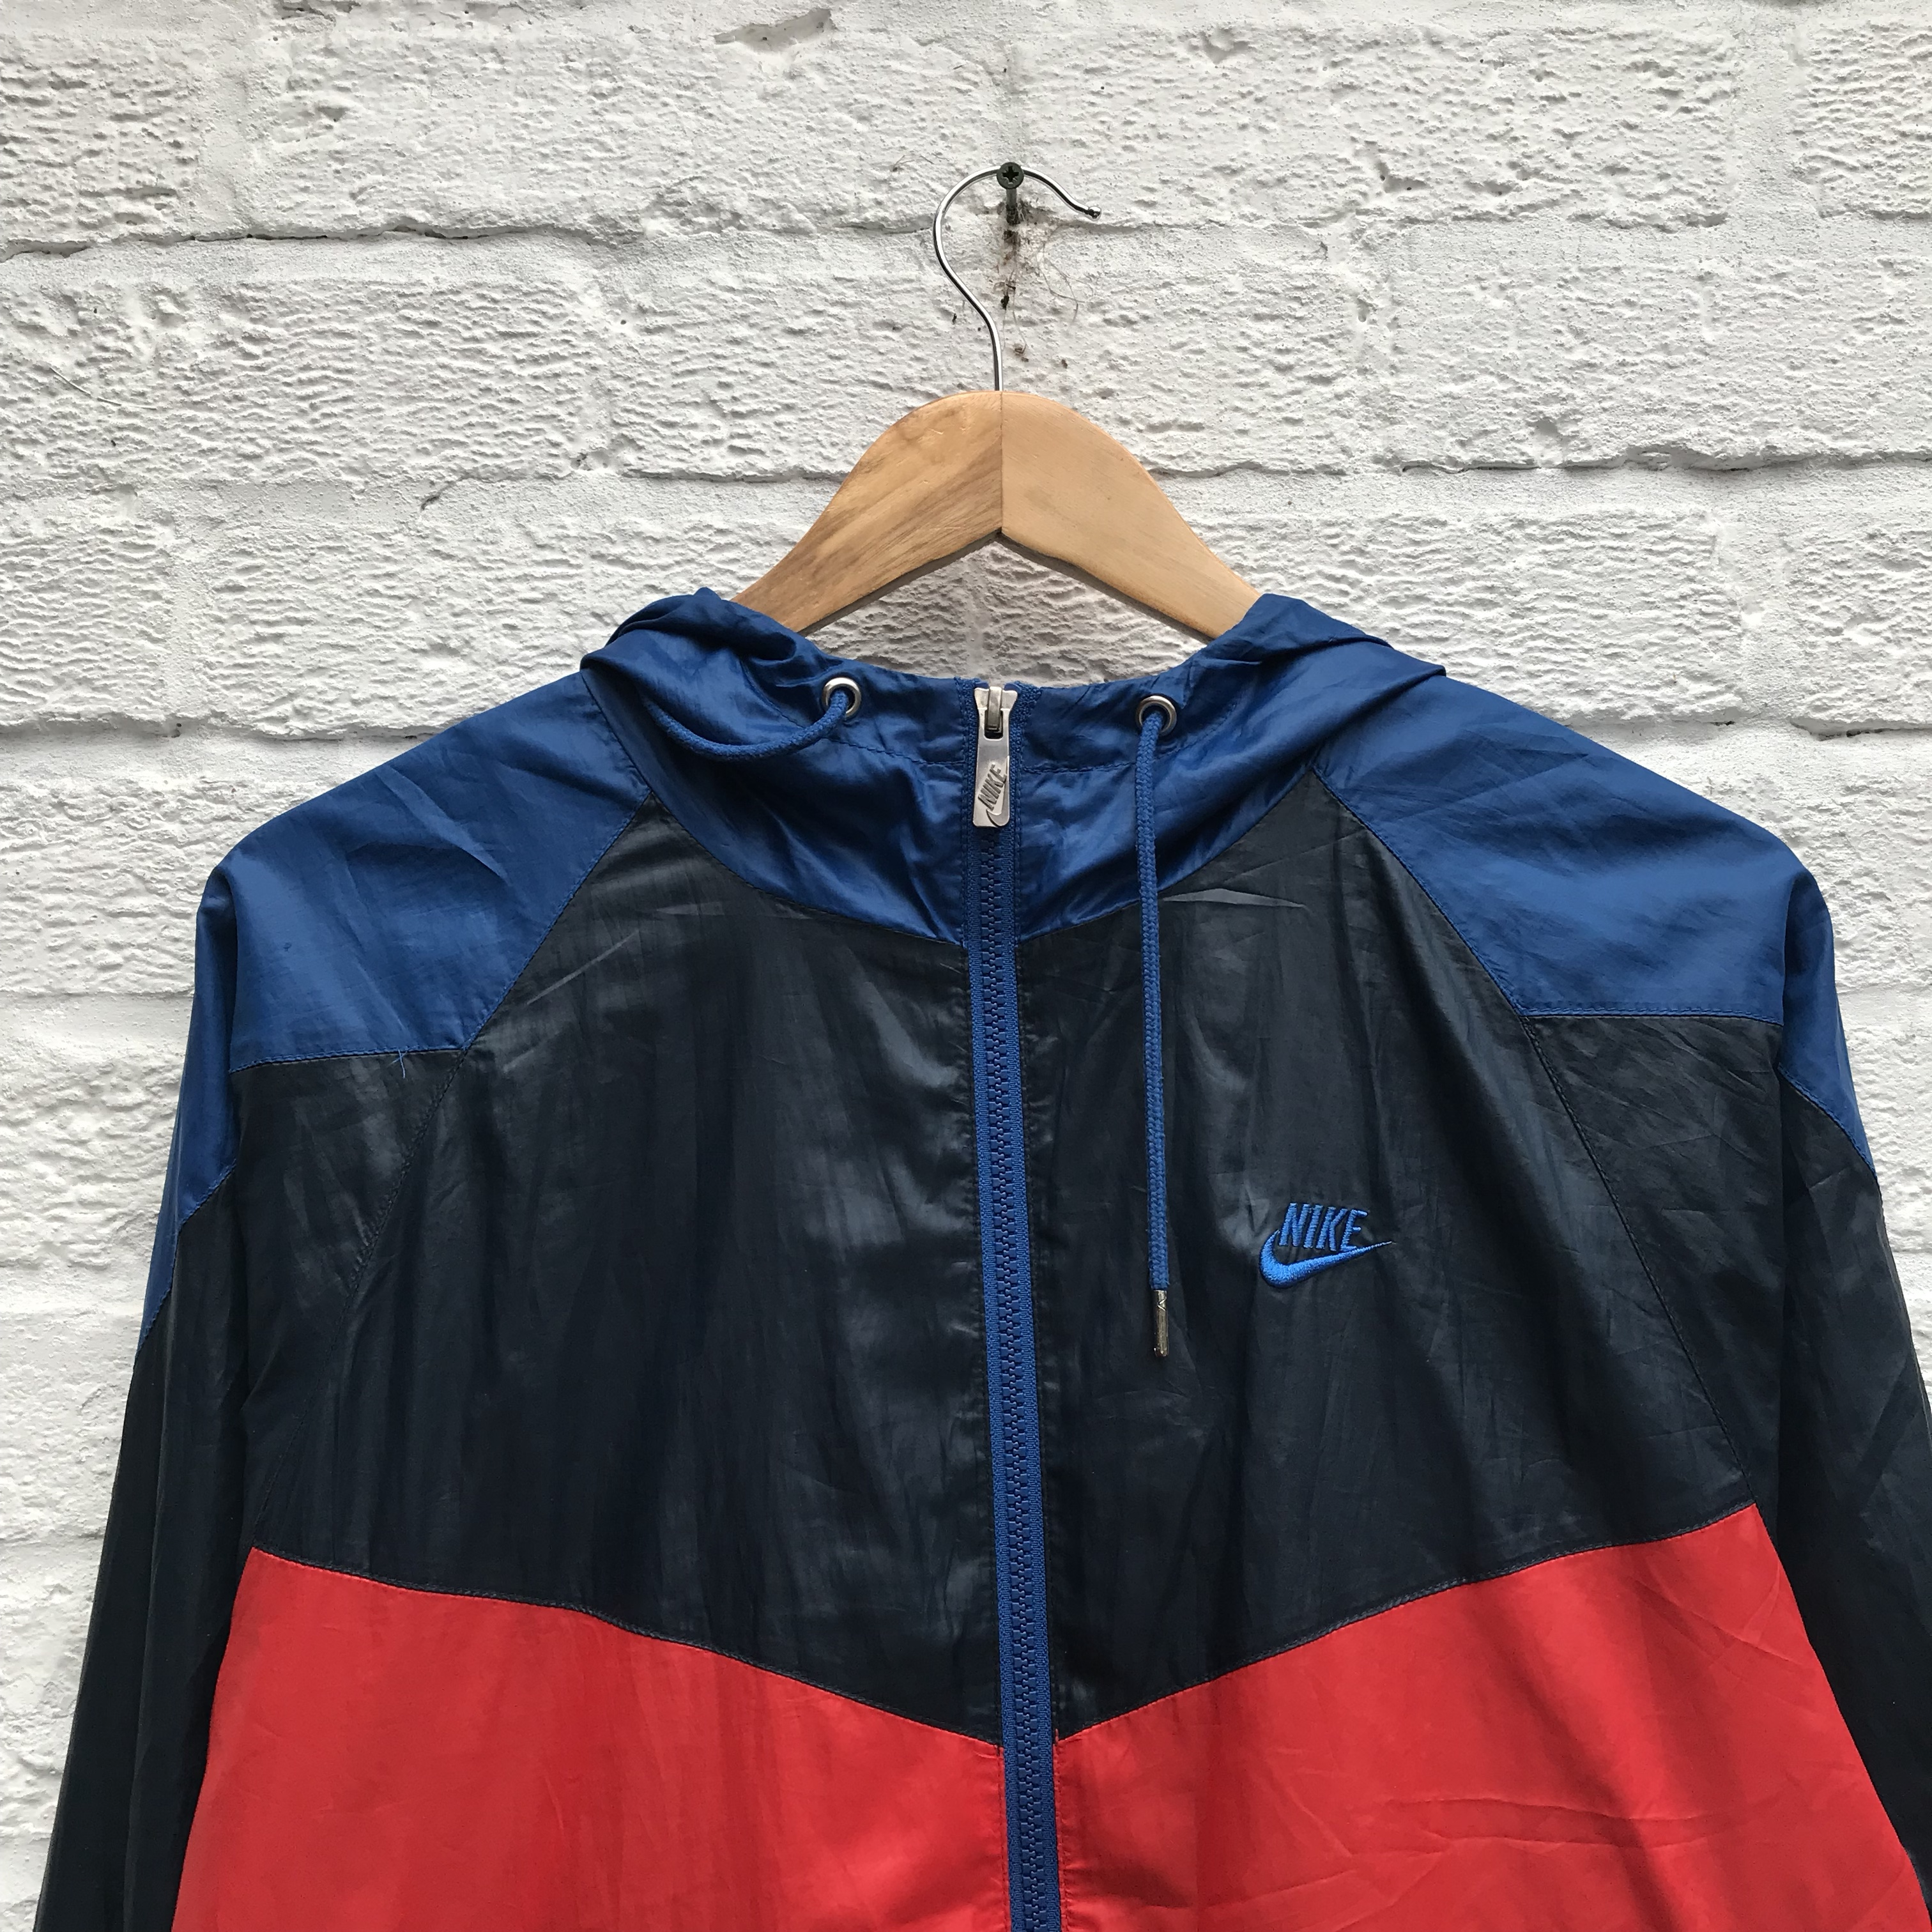 superior quality fast delivery lace up in SALE NO OFFERS vintage nike jacket windbreaker coat ...